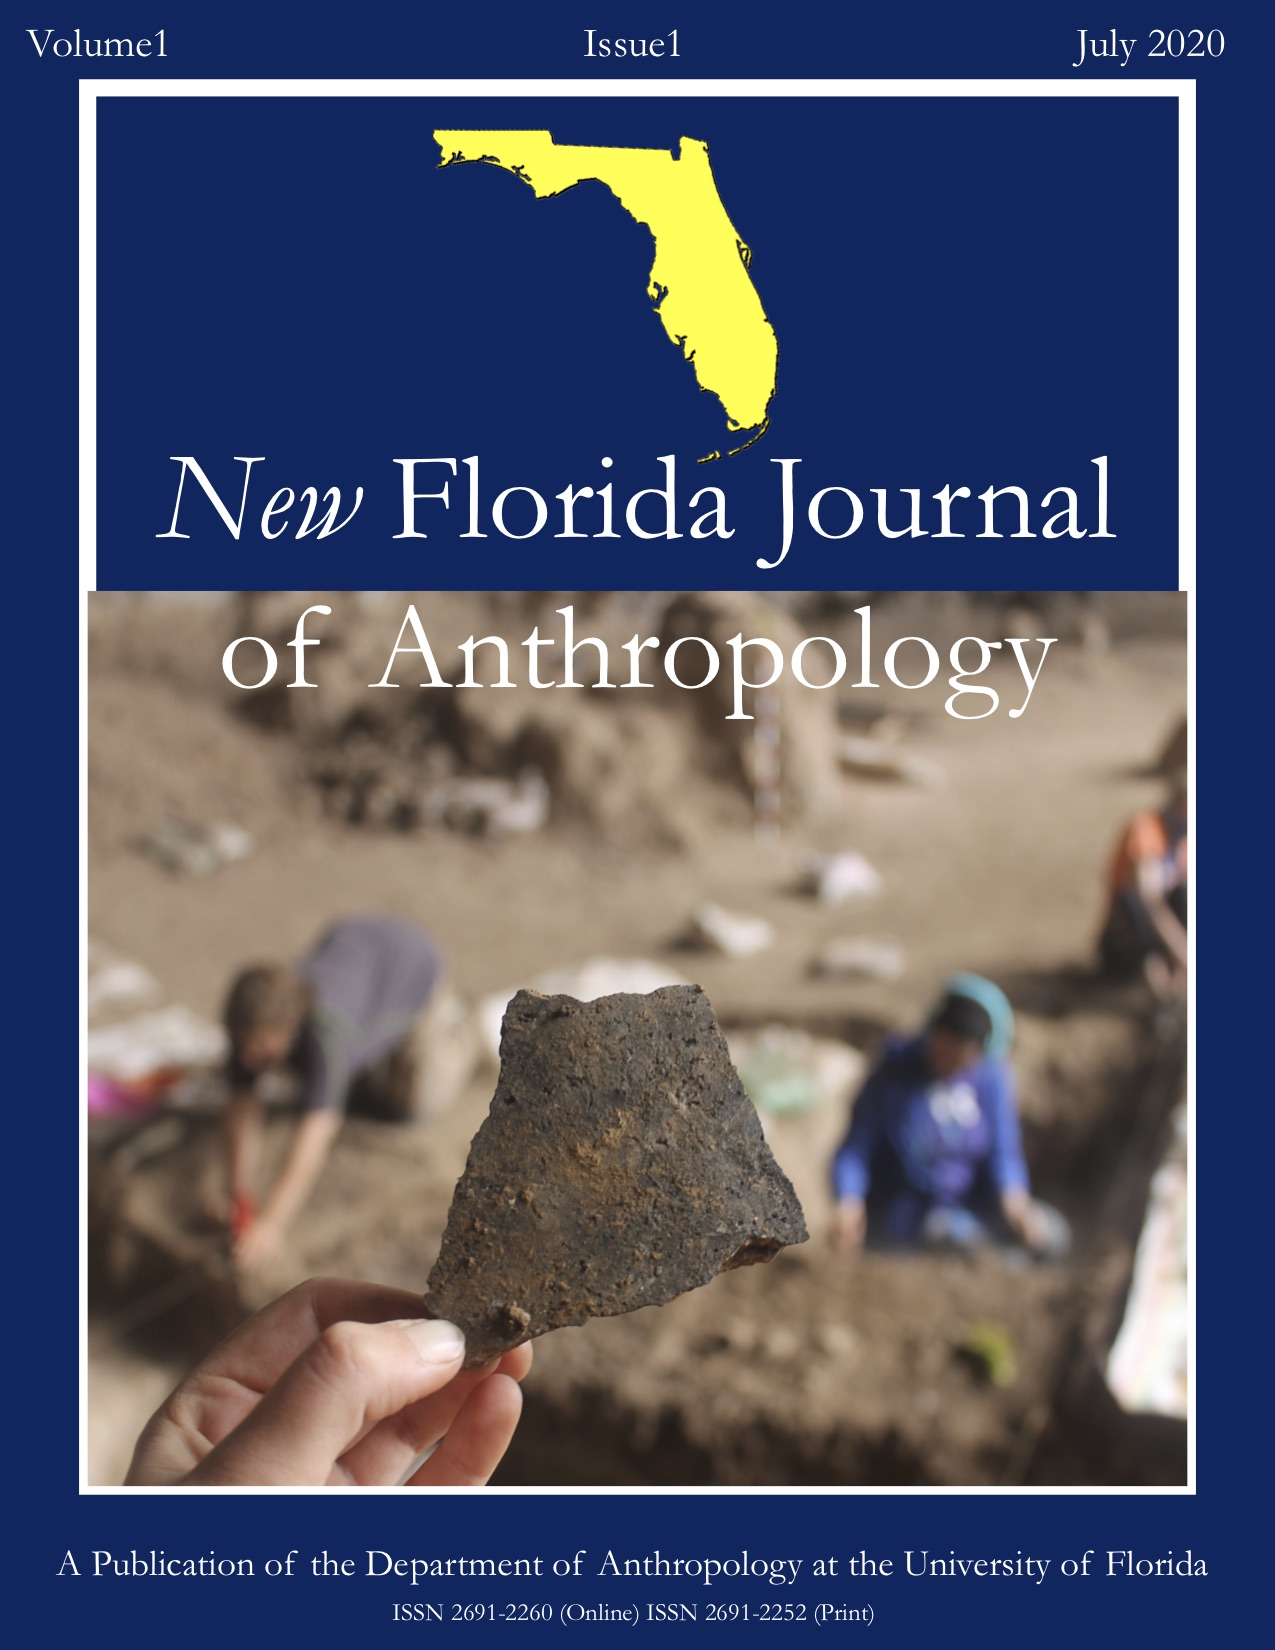 New Florida Journal of Anthropology (NFJA) cover image Volume 1 Issue 1. Depicts an image by Ayelen Garcia-Rudnik of an artifact from the Mochena Borago archeological site.